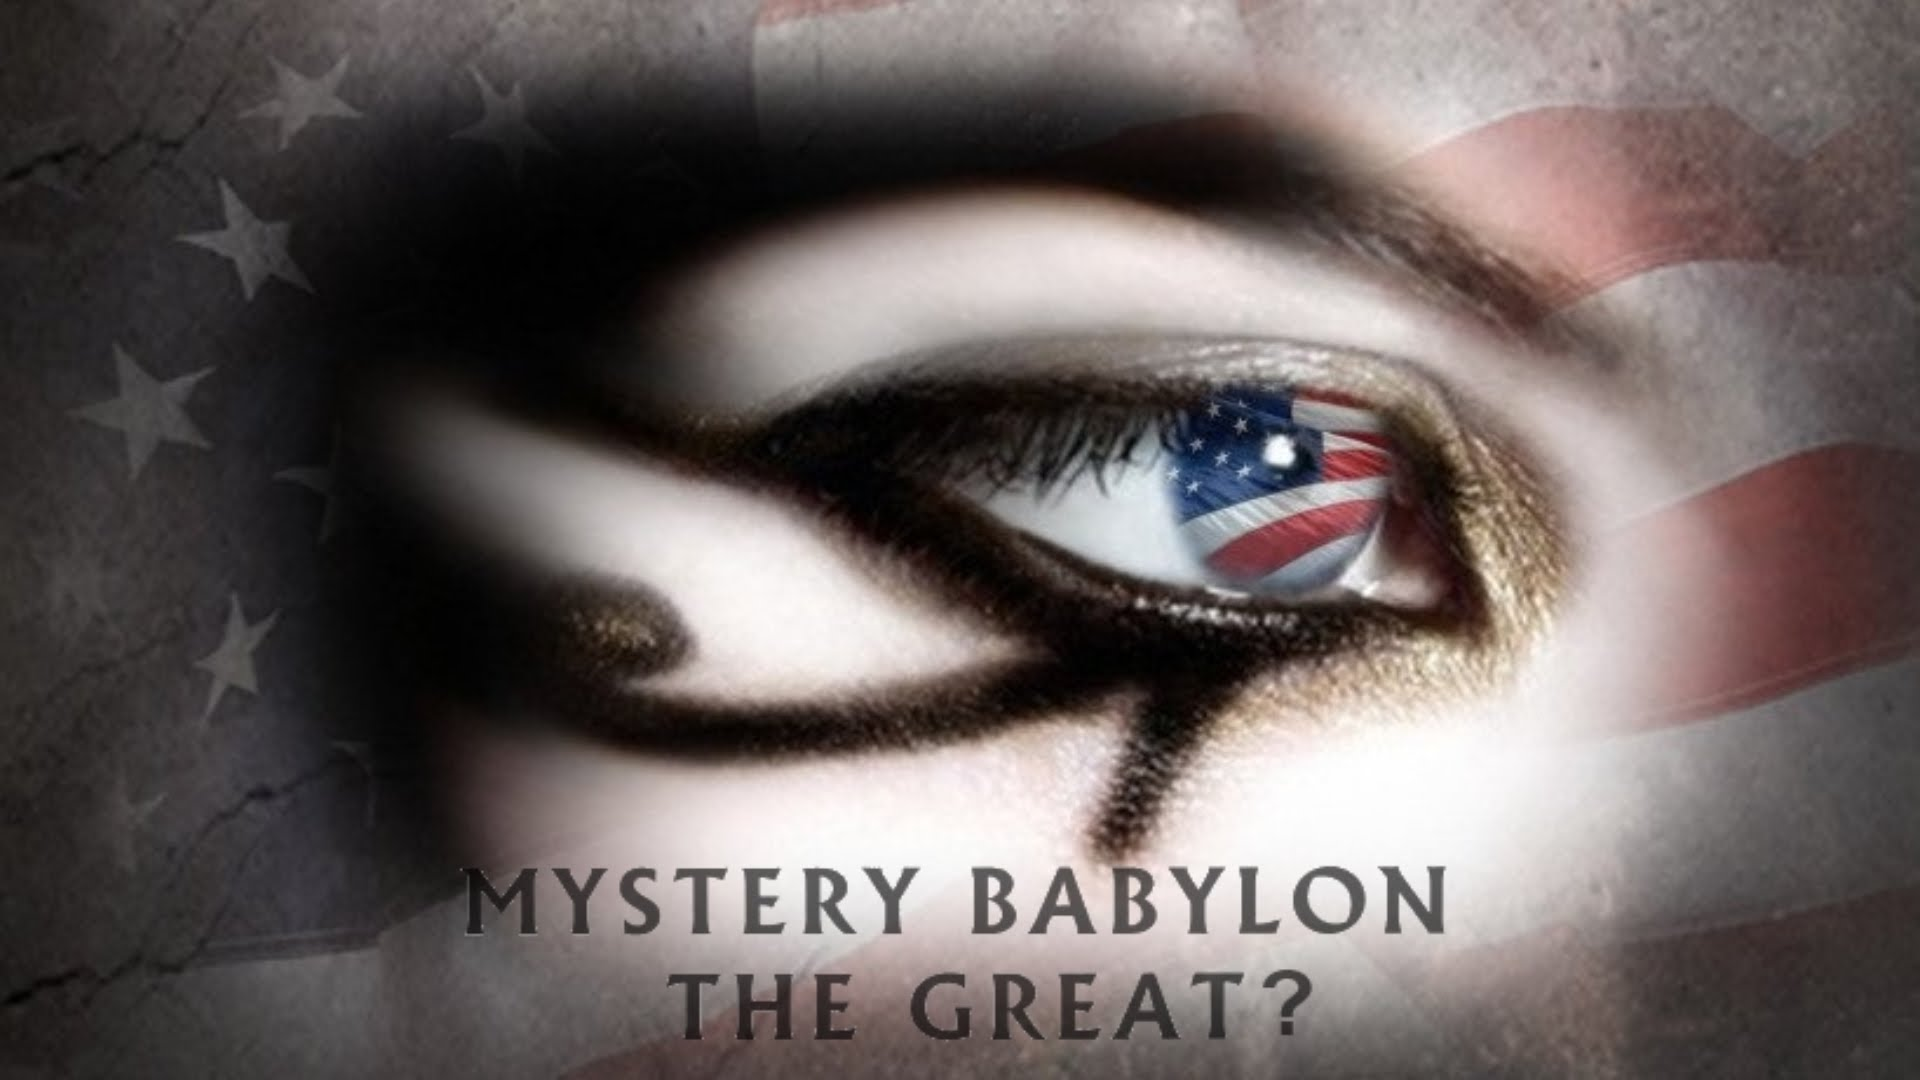 Christ is coming to save us from babylon